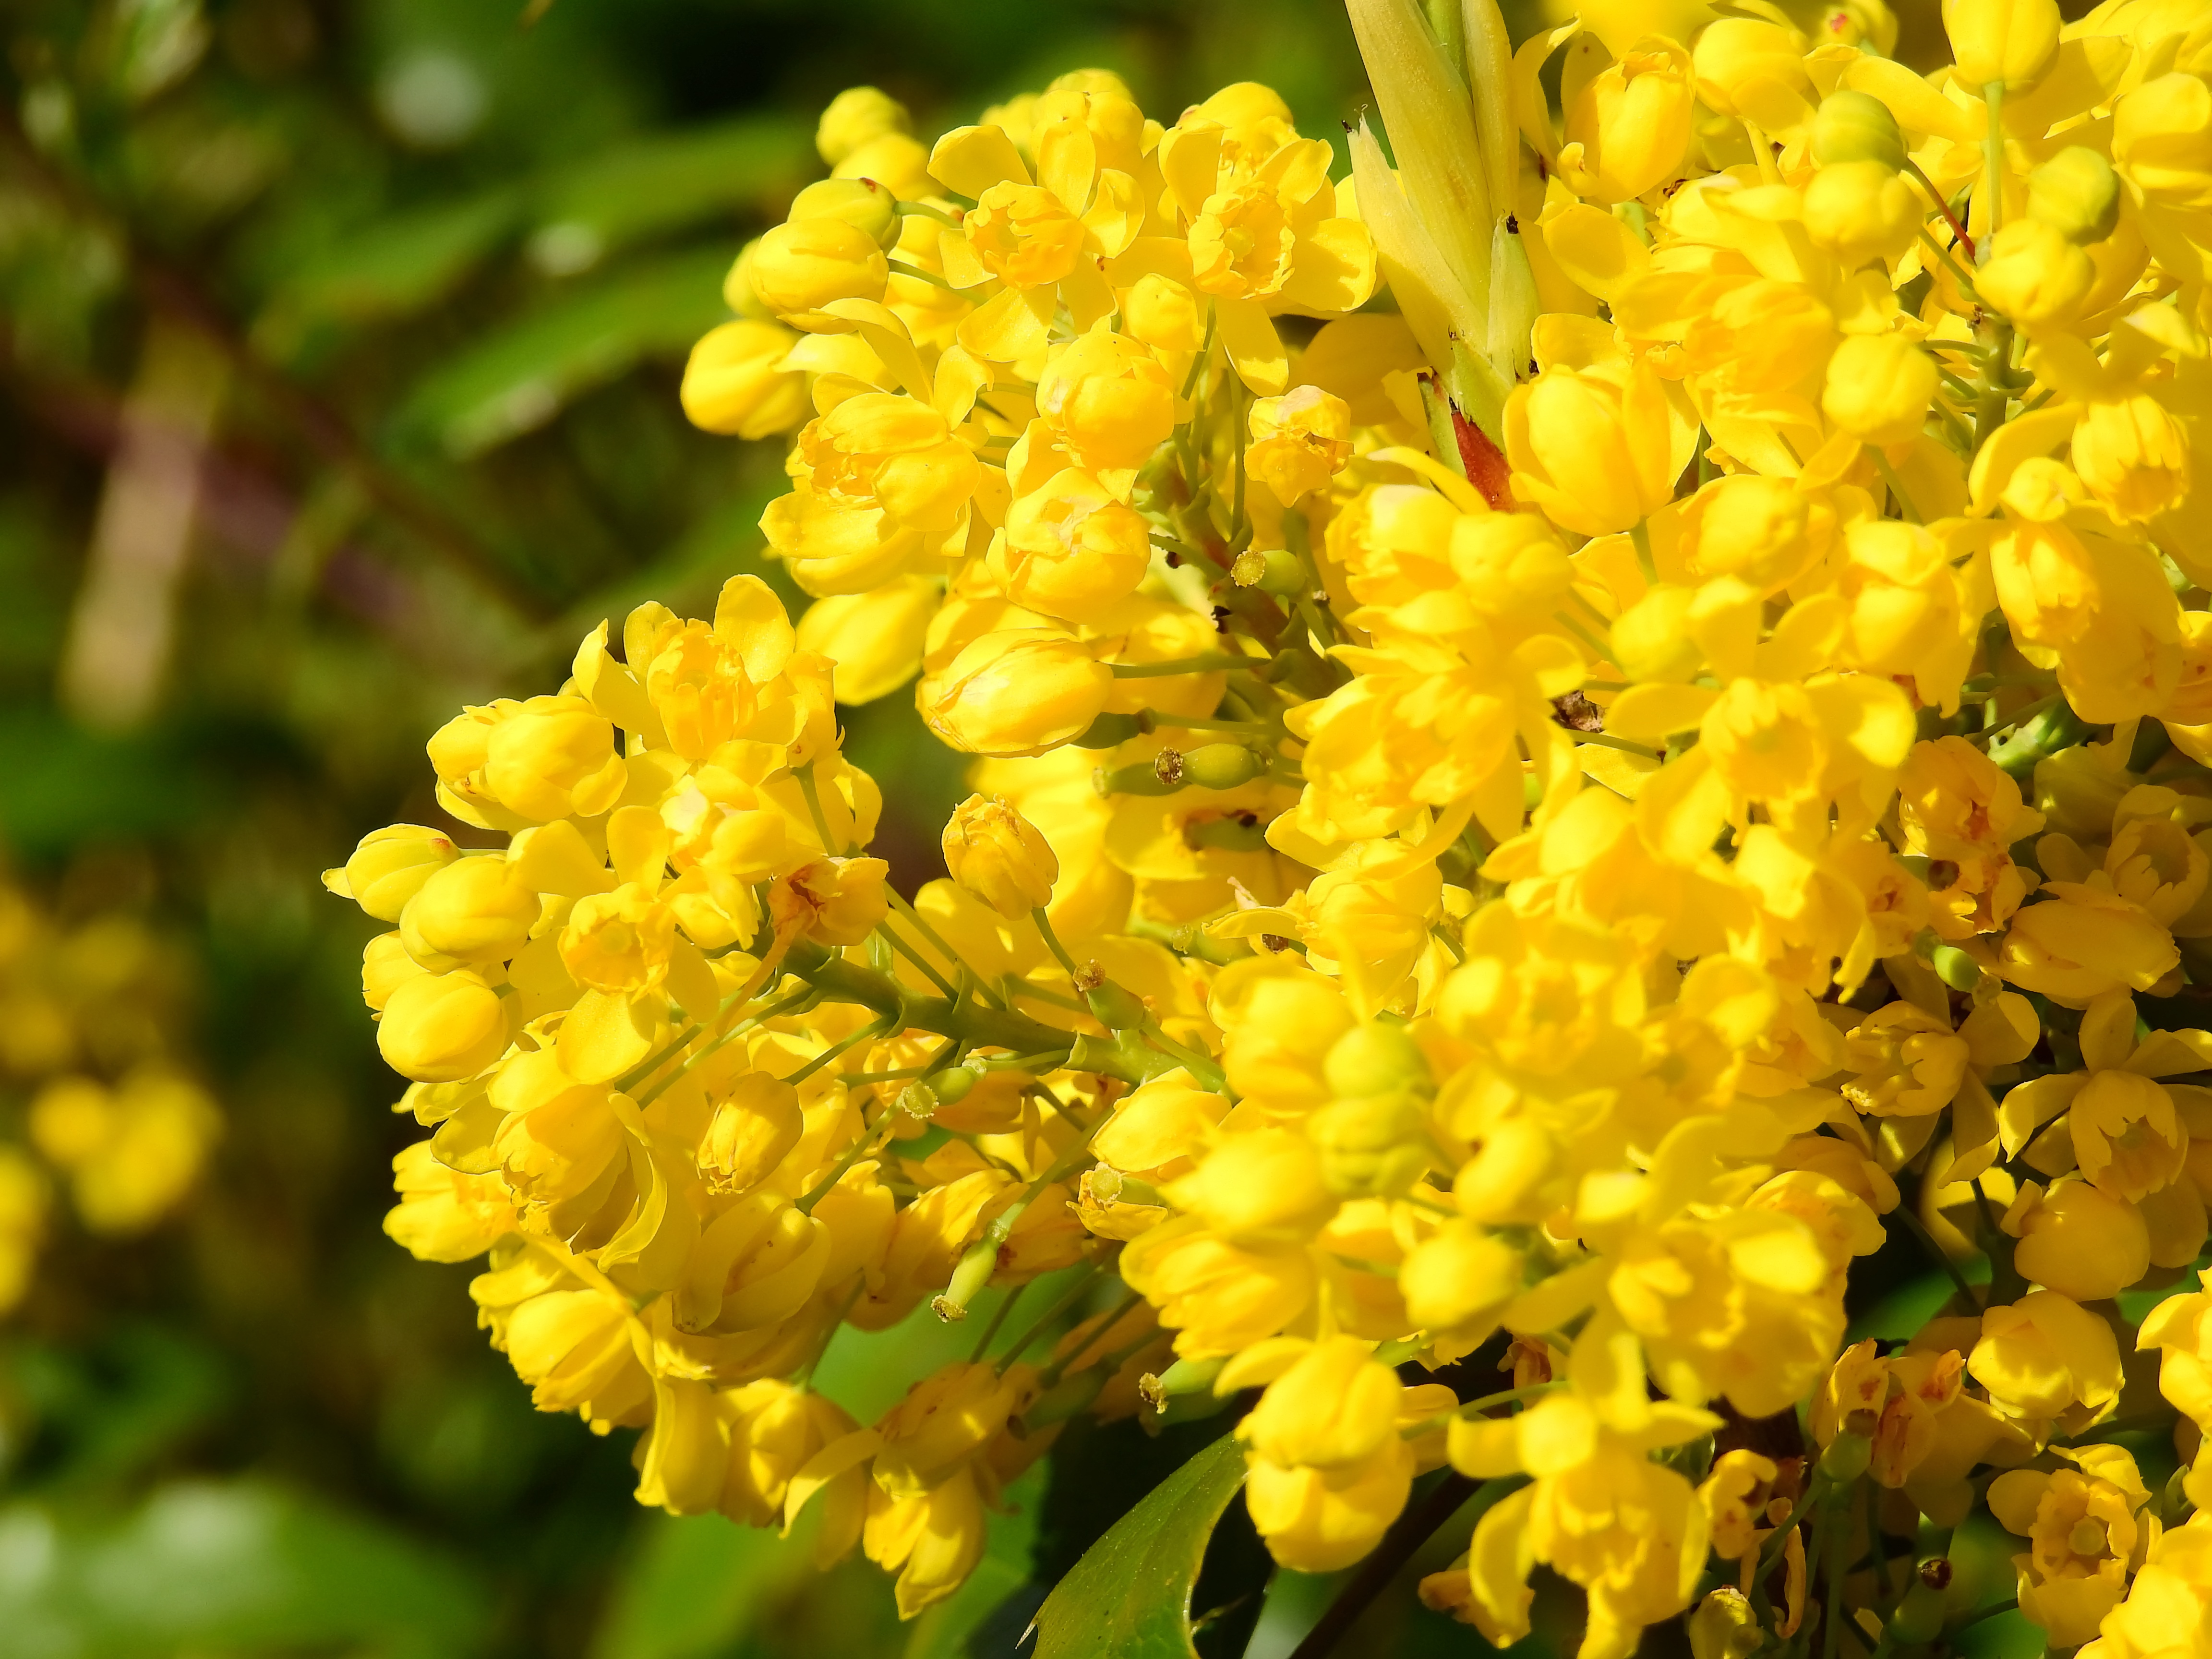 Spring Bush With Yellow Flowers Free Image